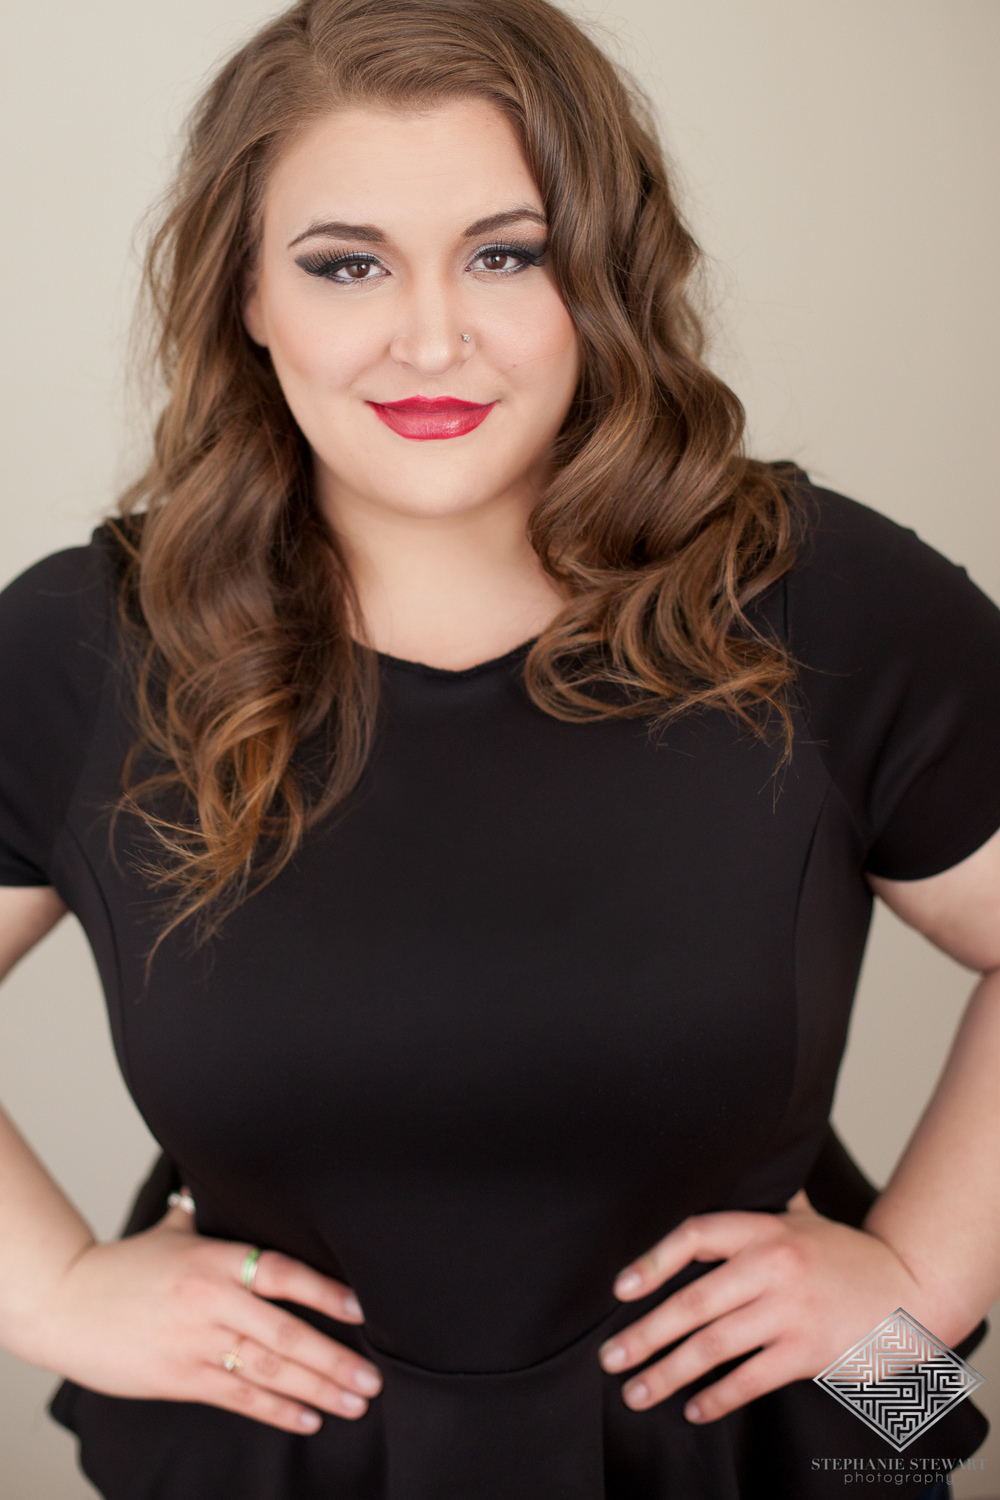 Glamour-Shot-Portrait-Photographer-Plus-Size-Curvy-Women-Glamour-HeadShots-Intimate-Red-Lip-Albuquerque-Stephanie-Stewart-Photography-NBExclusive